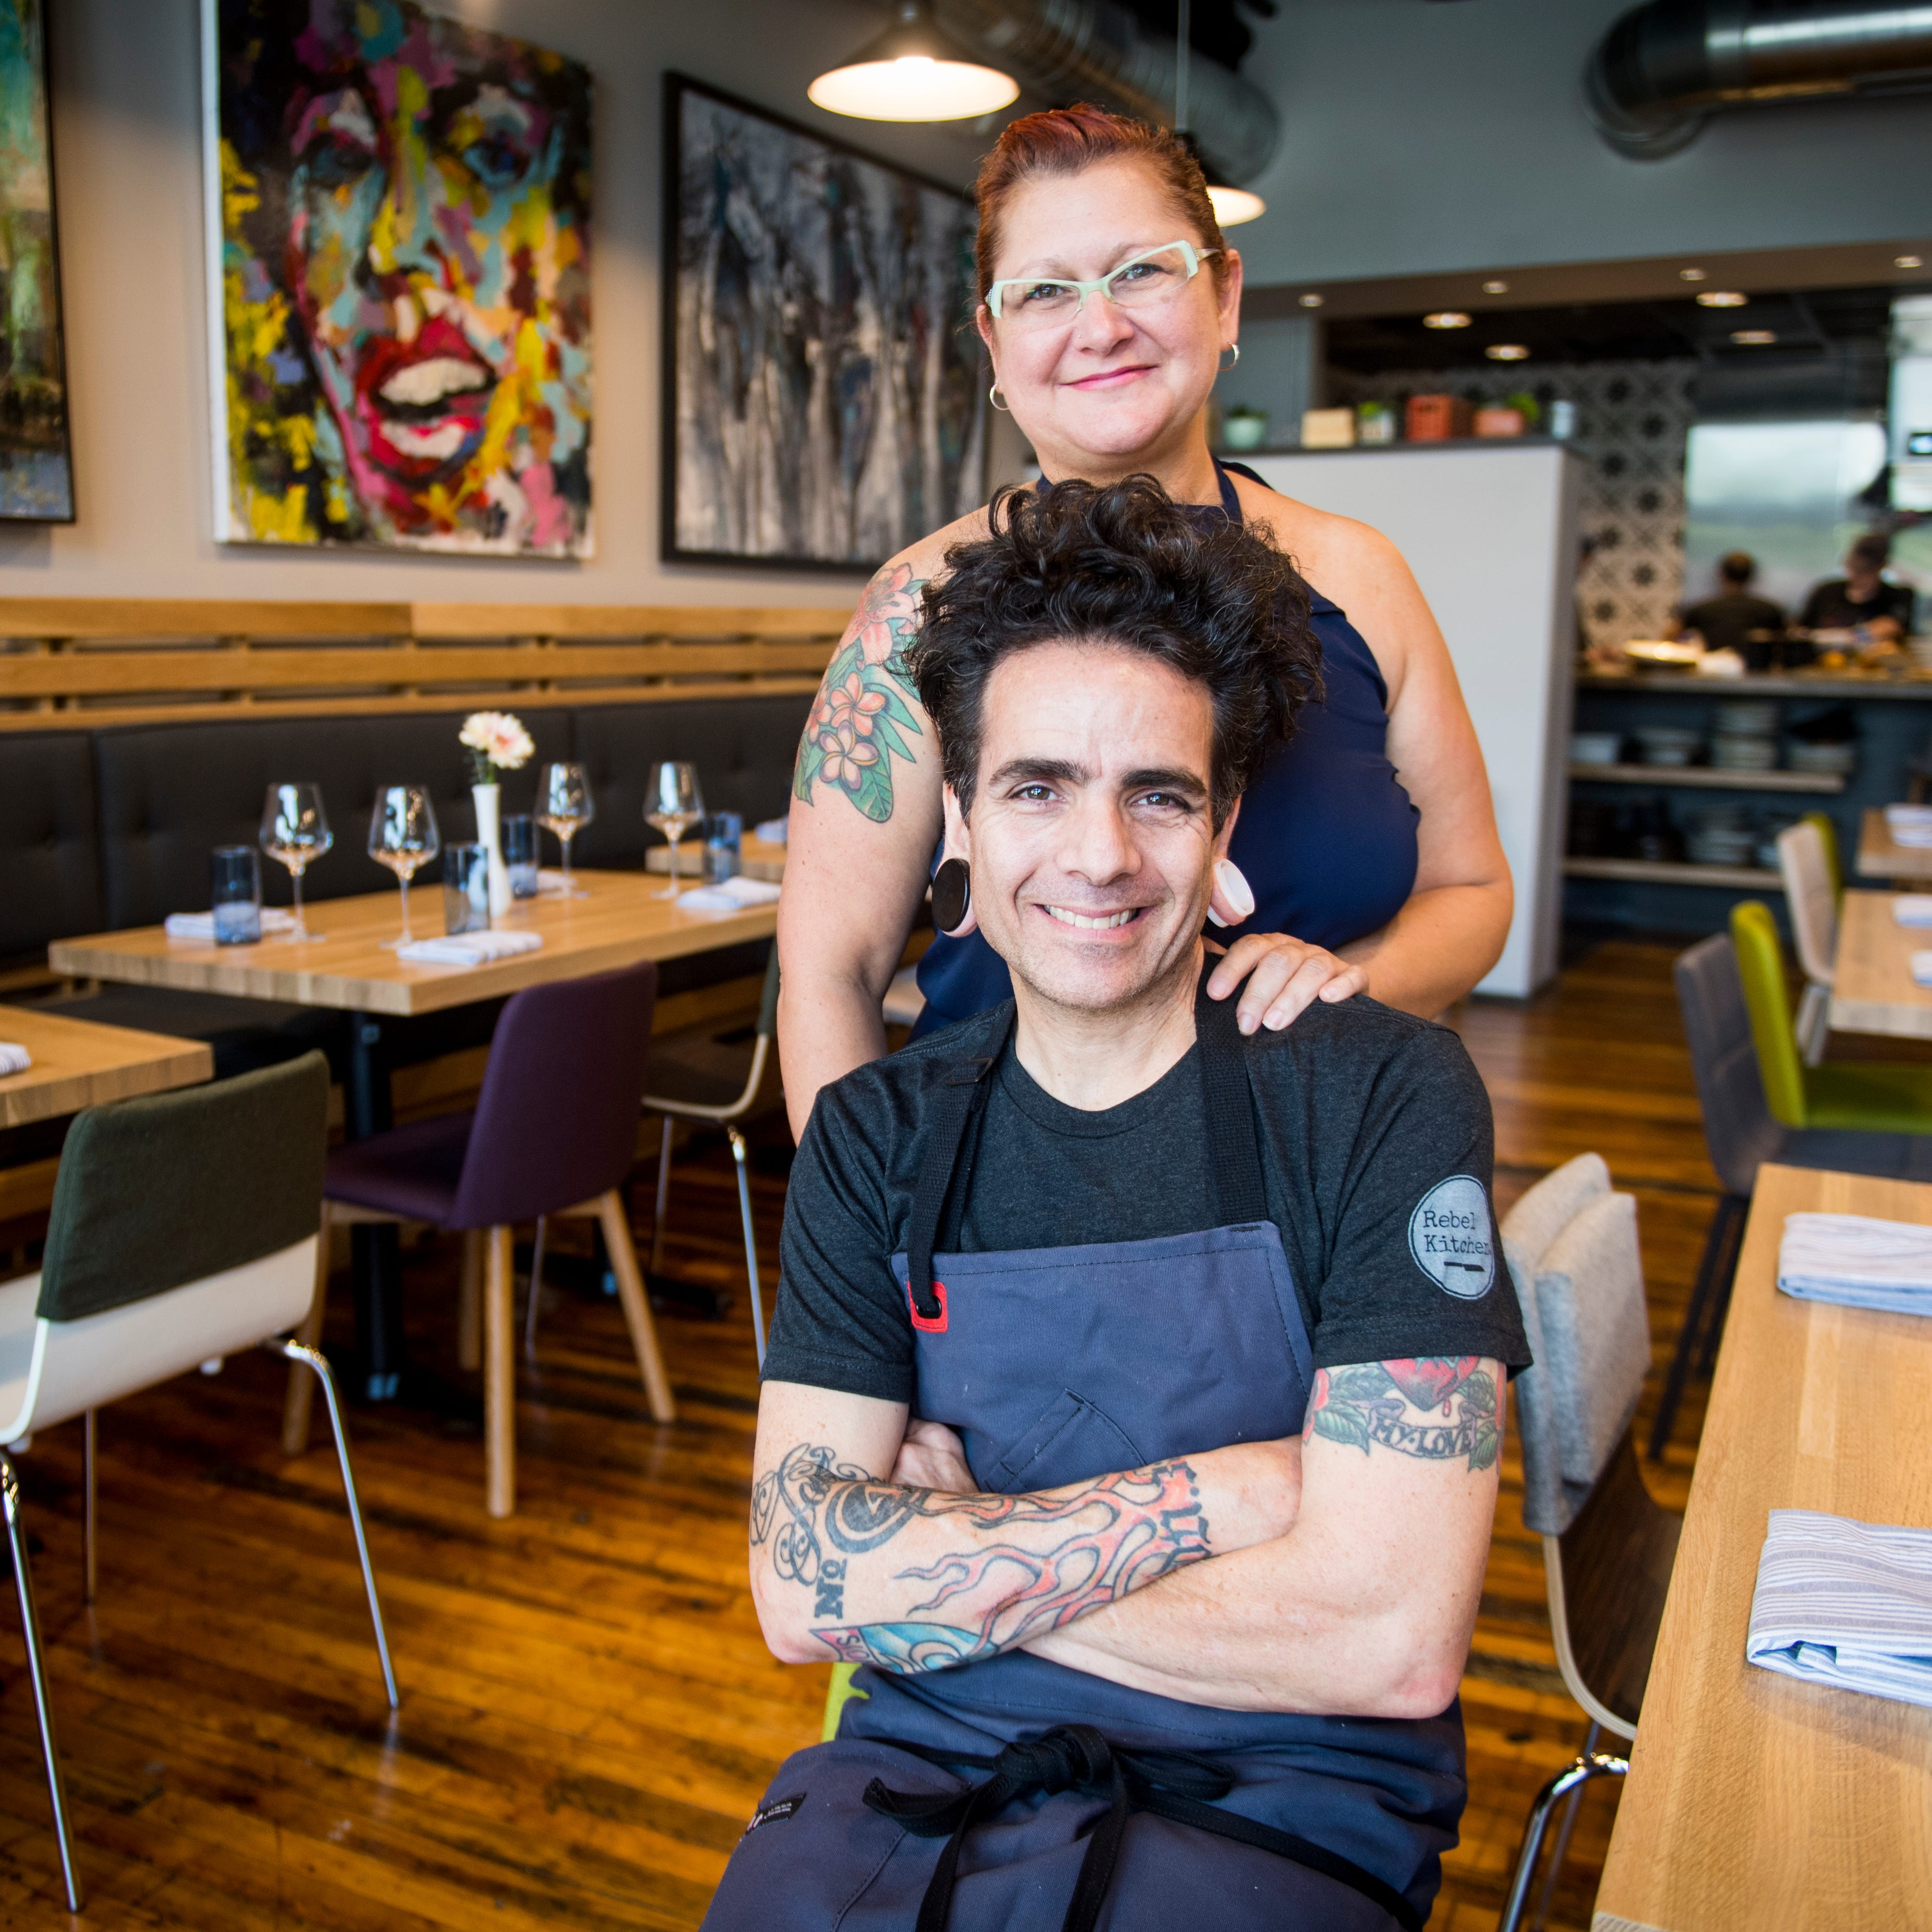 Paul and Franchesca Sellas have made the new Rebel Kitchen restaurant a family affair